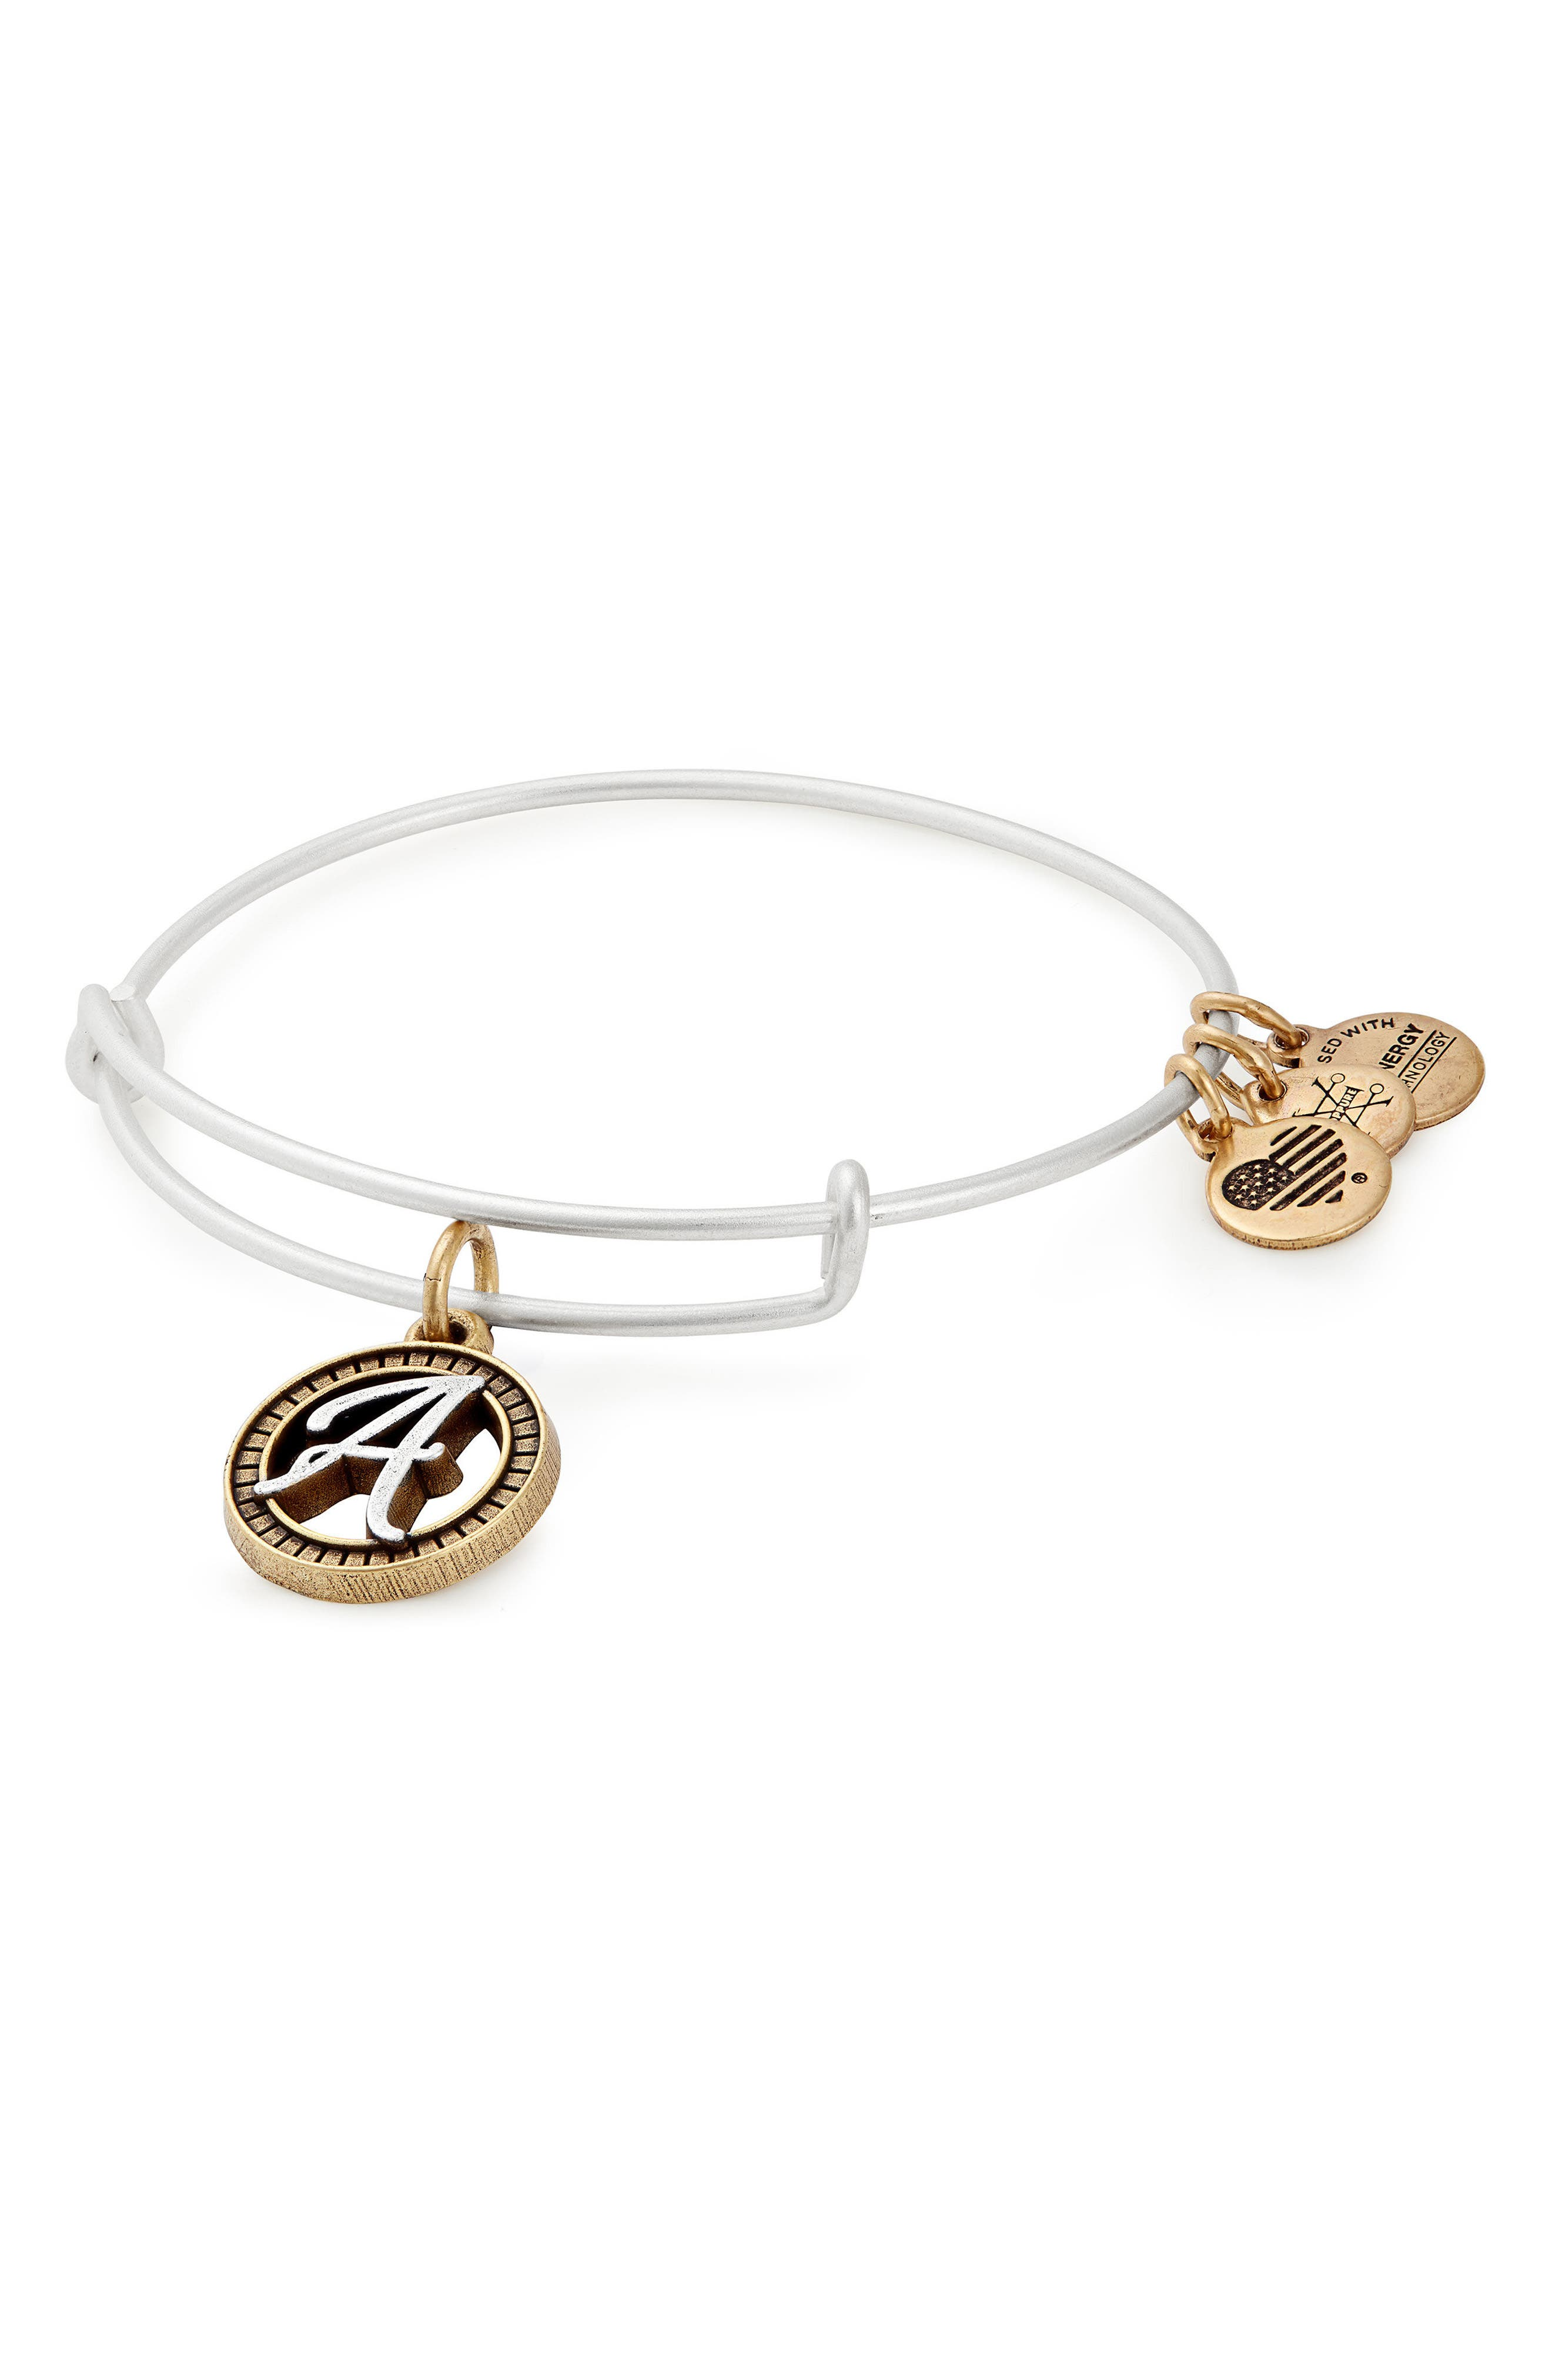 ALEX AND ANI, Two-Tone Initial Charm Expandable Bracelet, Main thumbnail 1, color, TWO-TONE-A